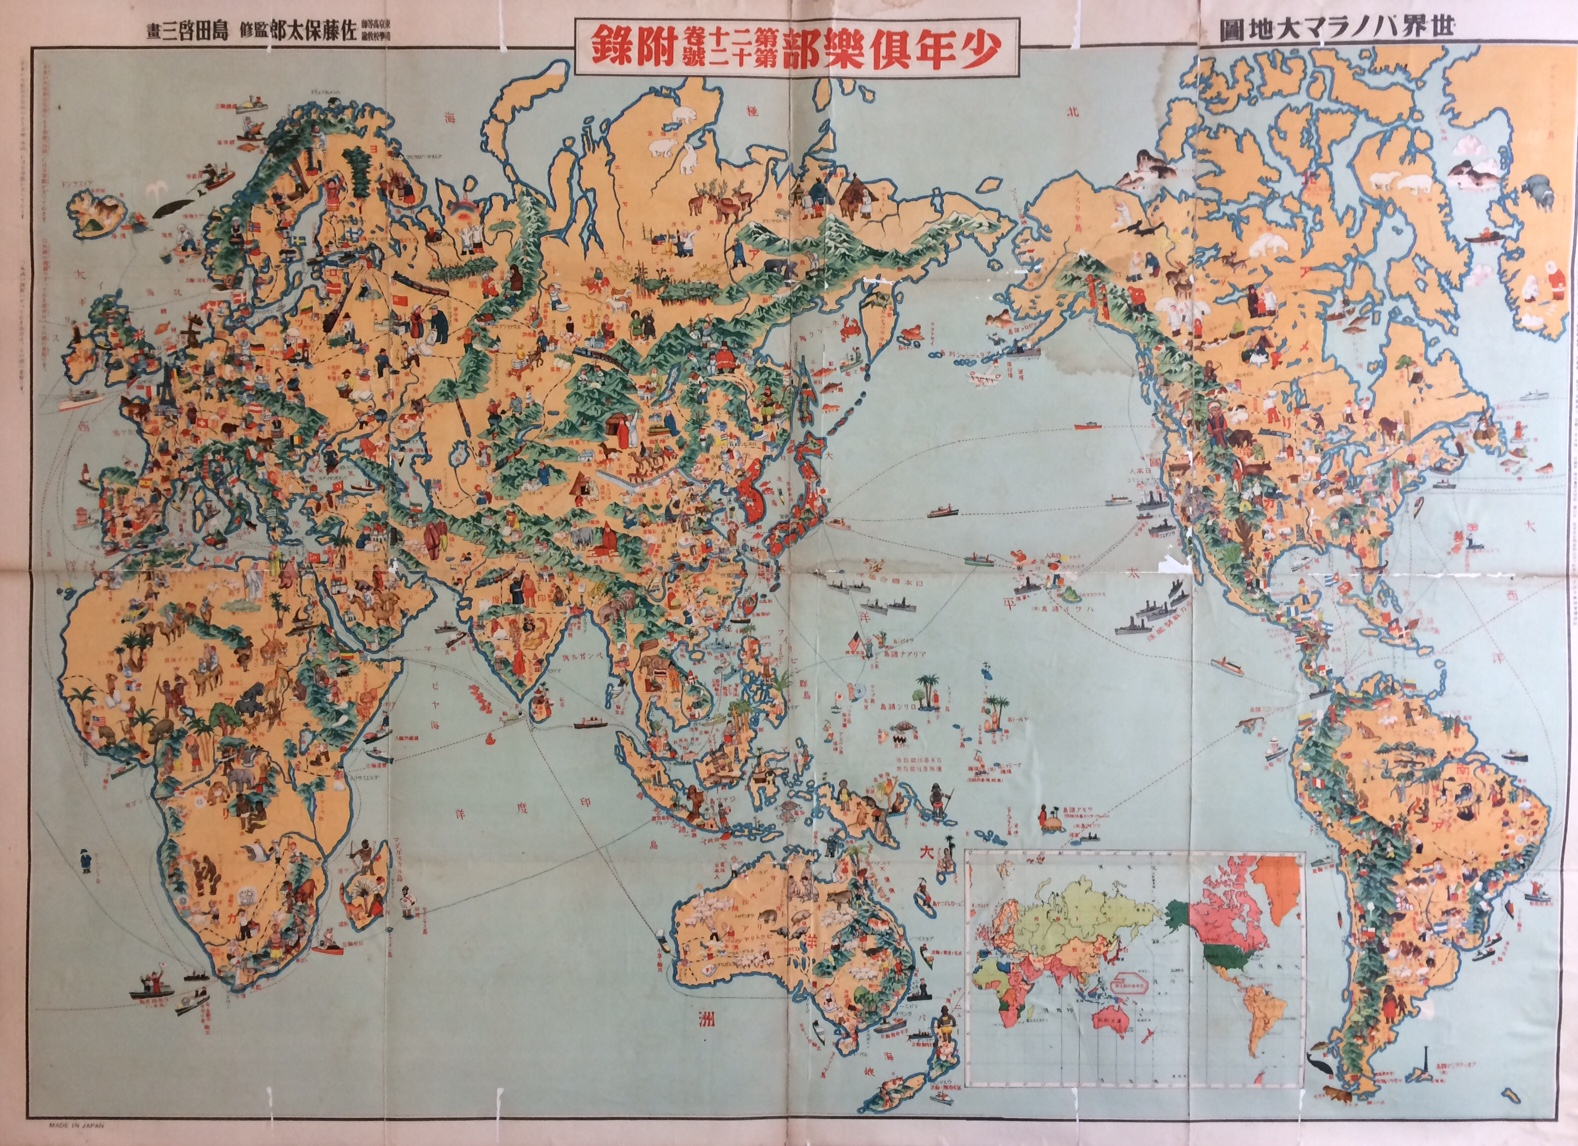 World Map 1933.World Map 1933 Japanese Pictorial Map Of The World Keizo Shimada